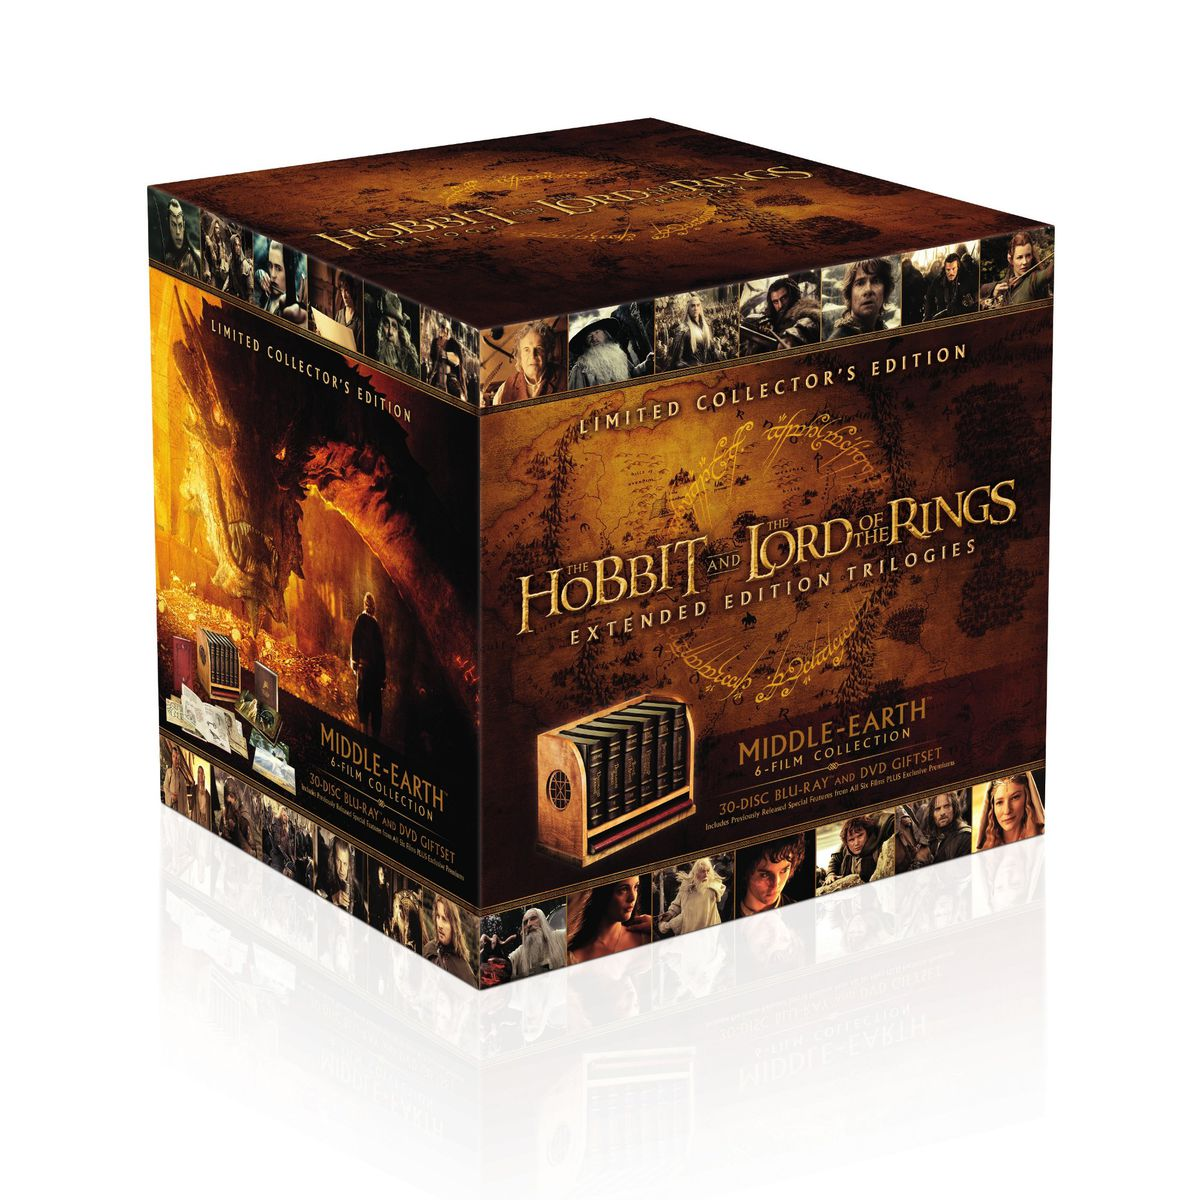 Who is this $800 Lord of the Rings and The Hobbit boxset